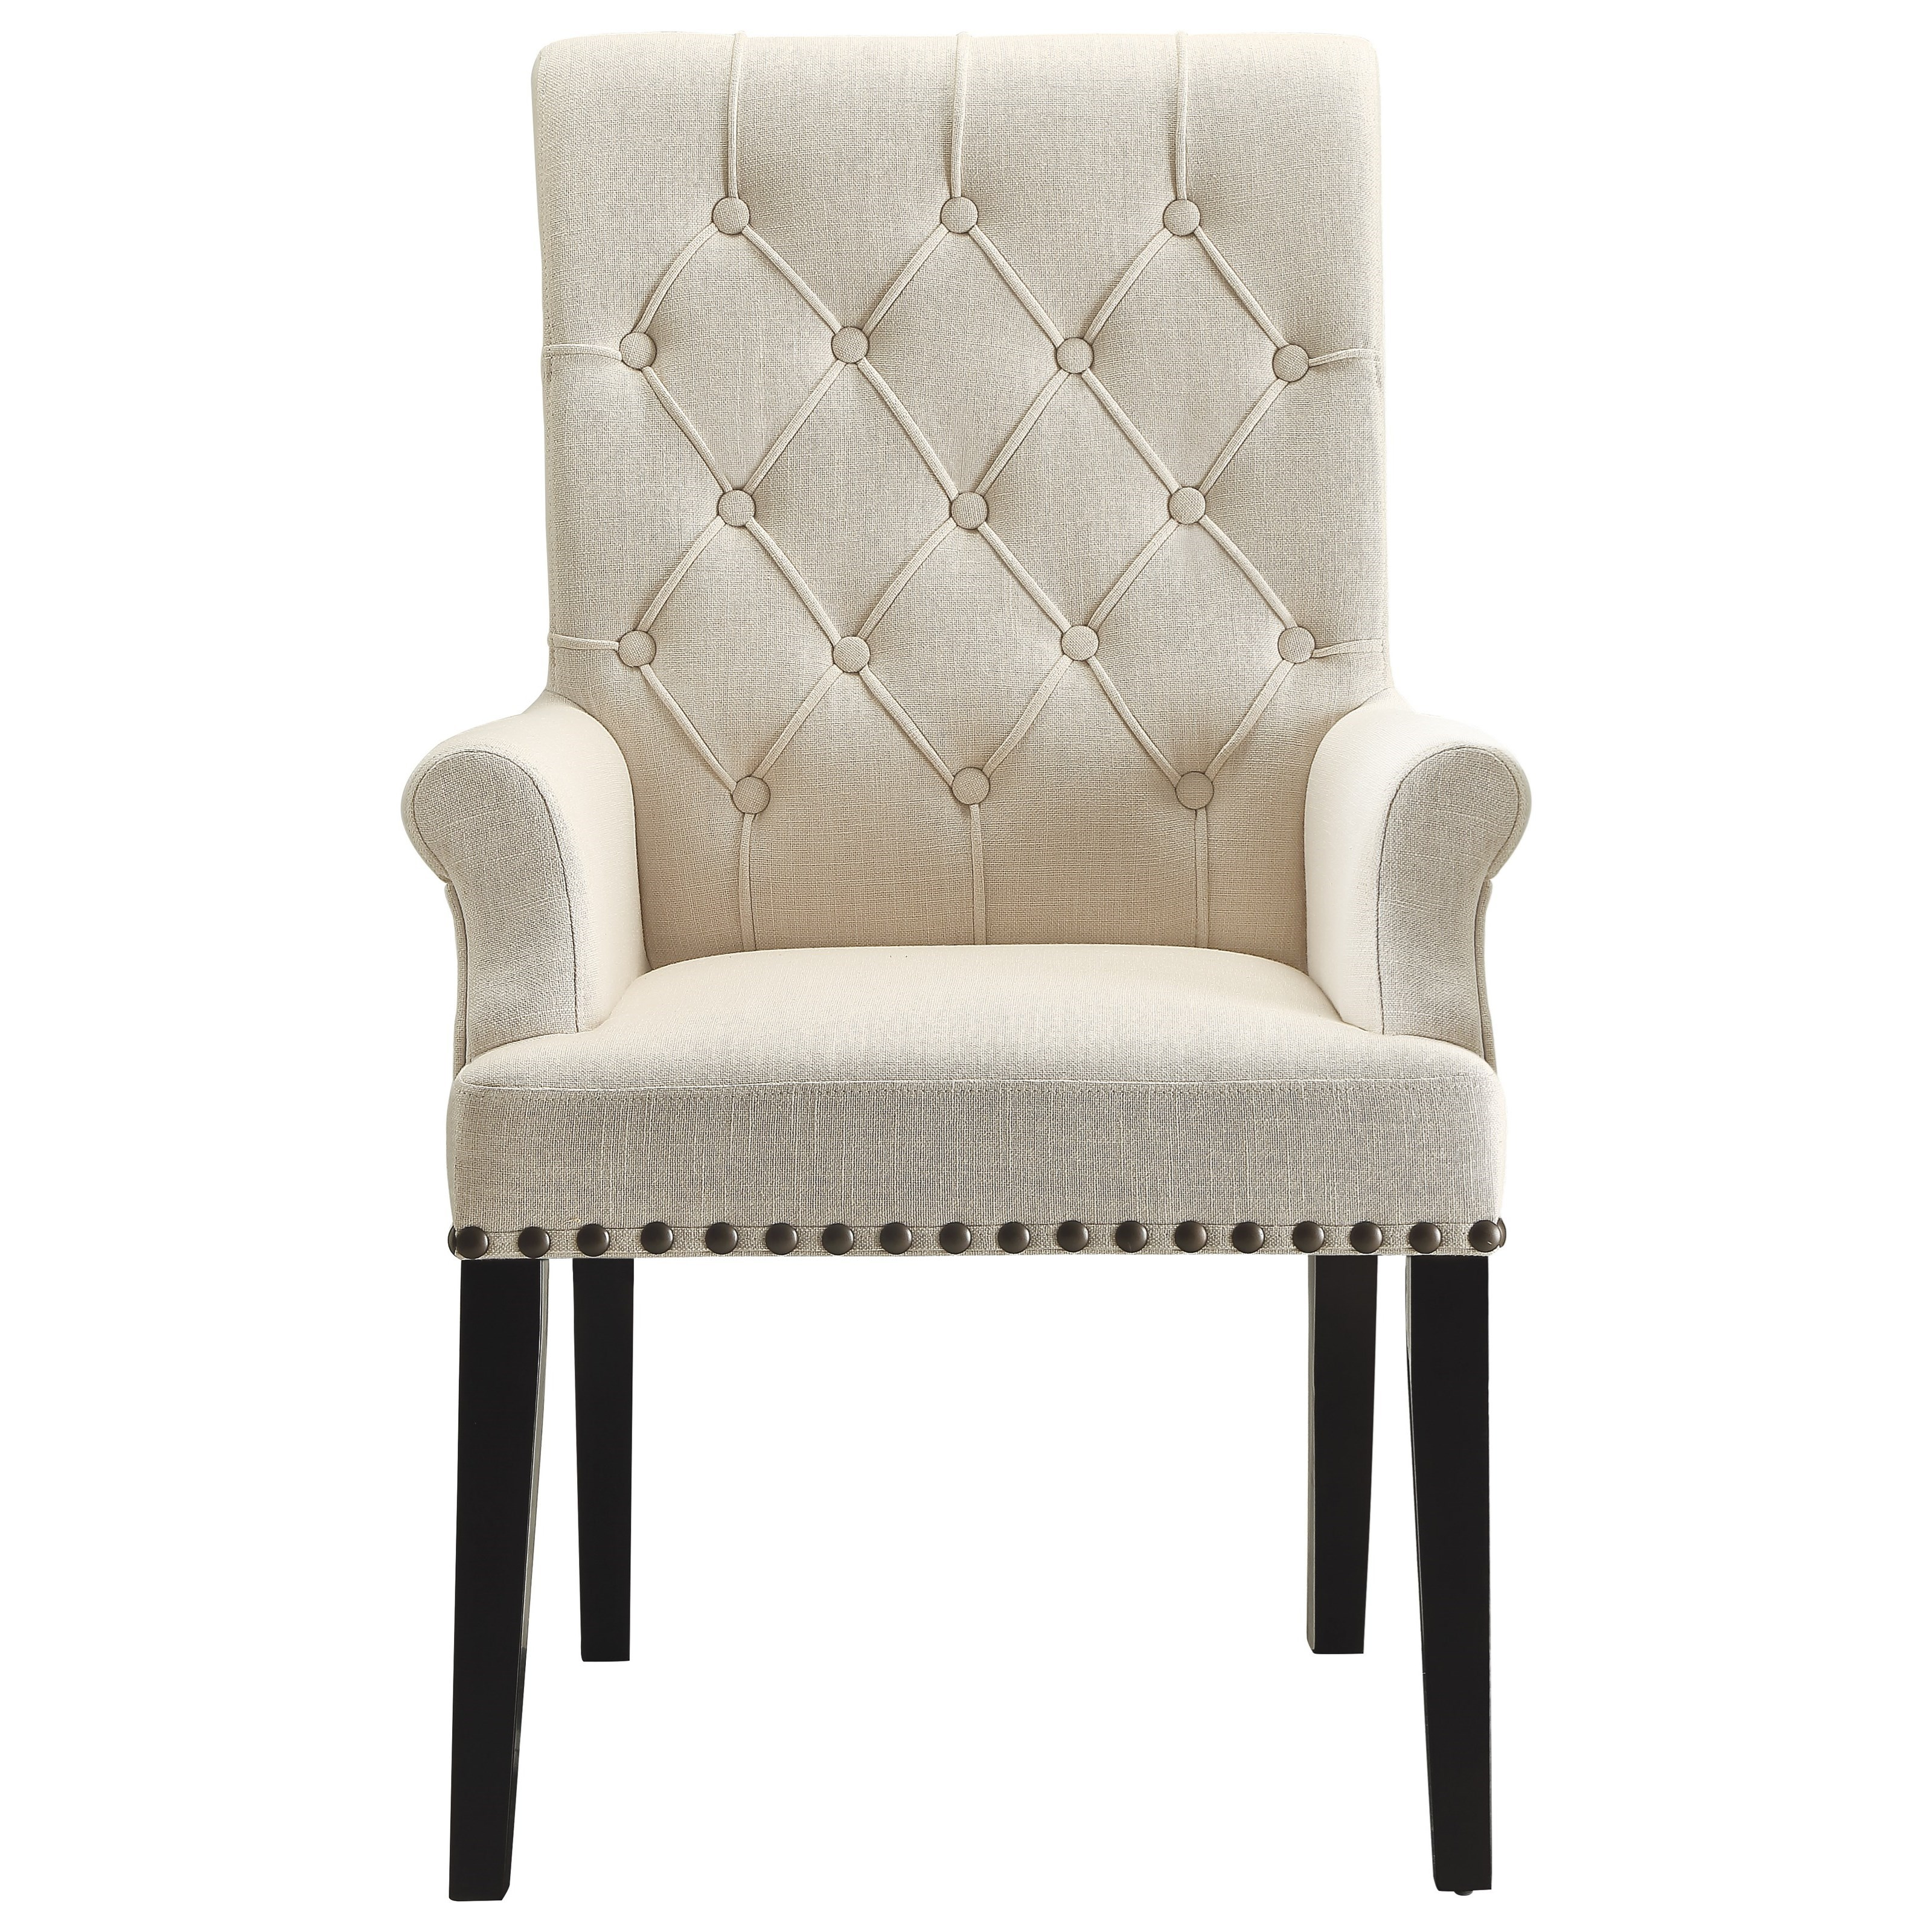 Arm Chairs Parkins Upholstered Dining Arm Chair By Coaster At Value City Furniture